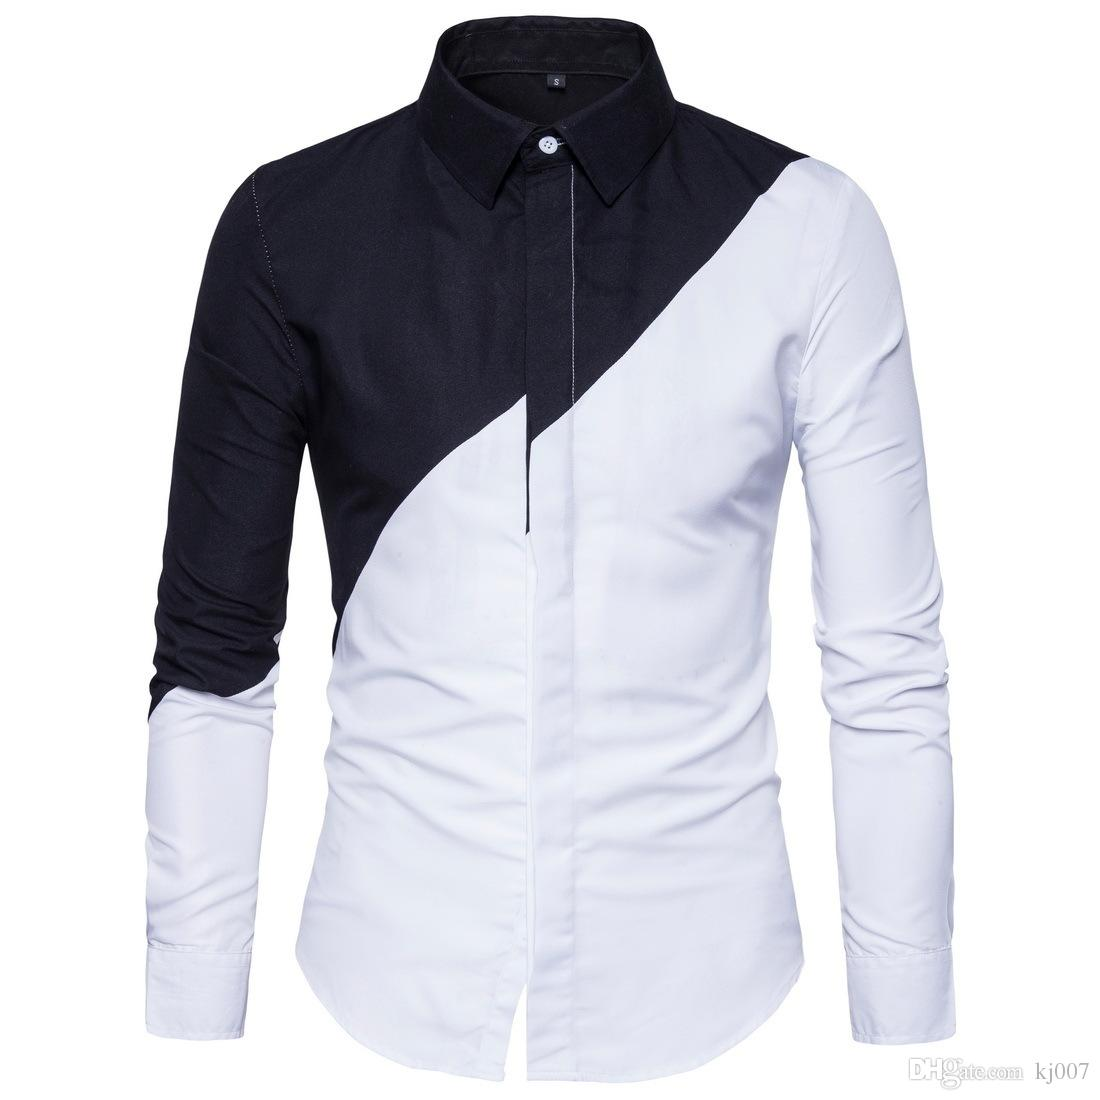 1b0335130ff 2019 New Style Hot Shirt Summer Men S Black And White Casual Shirts  Stitching Long Sleeved Shirts For Men Contrast Color Hot Top Fashion  Clothing From Kj007 ...